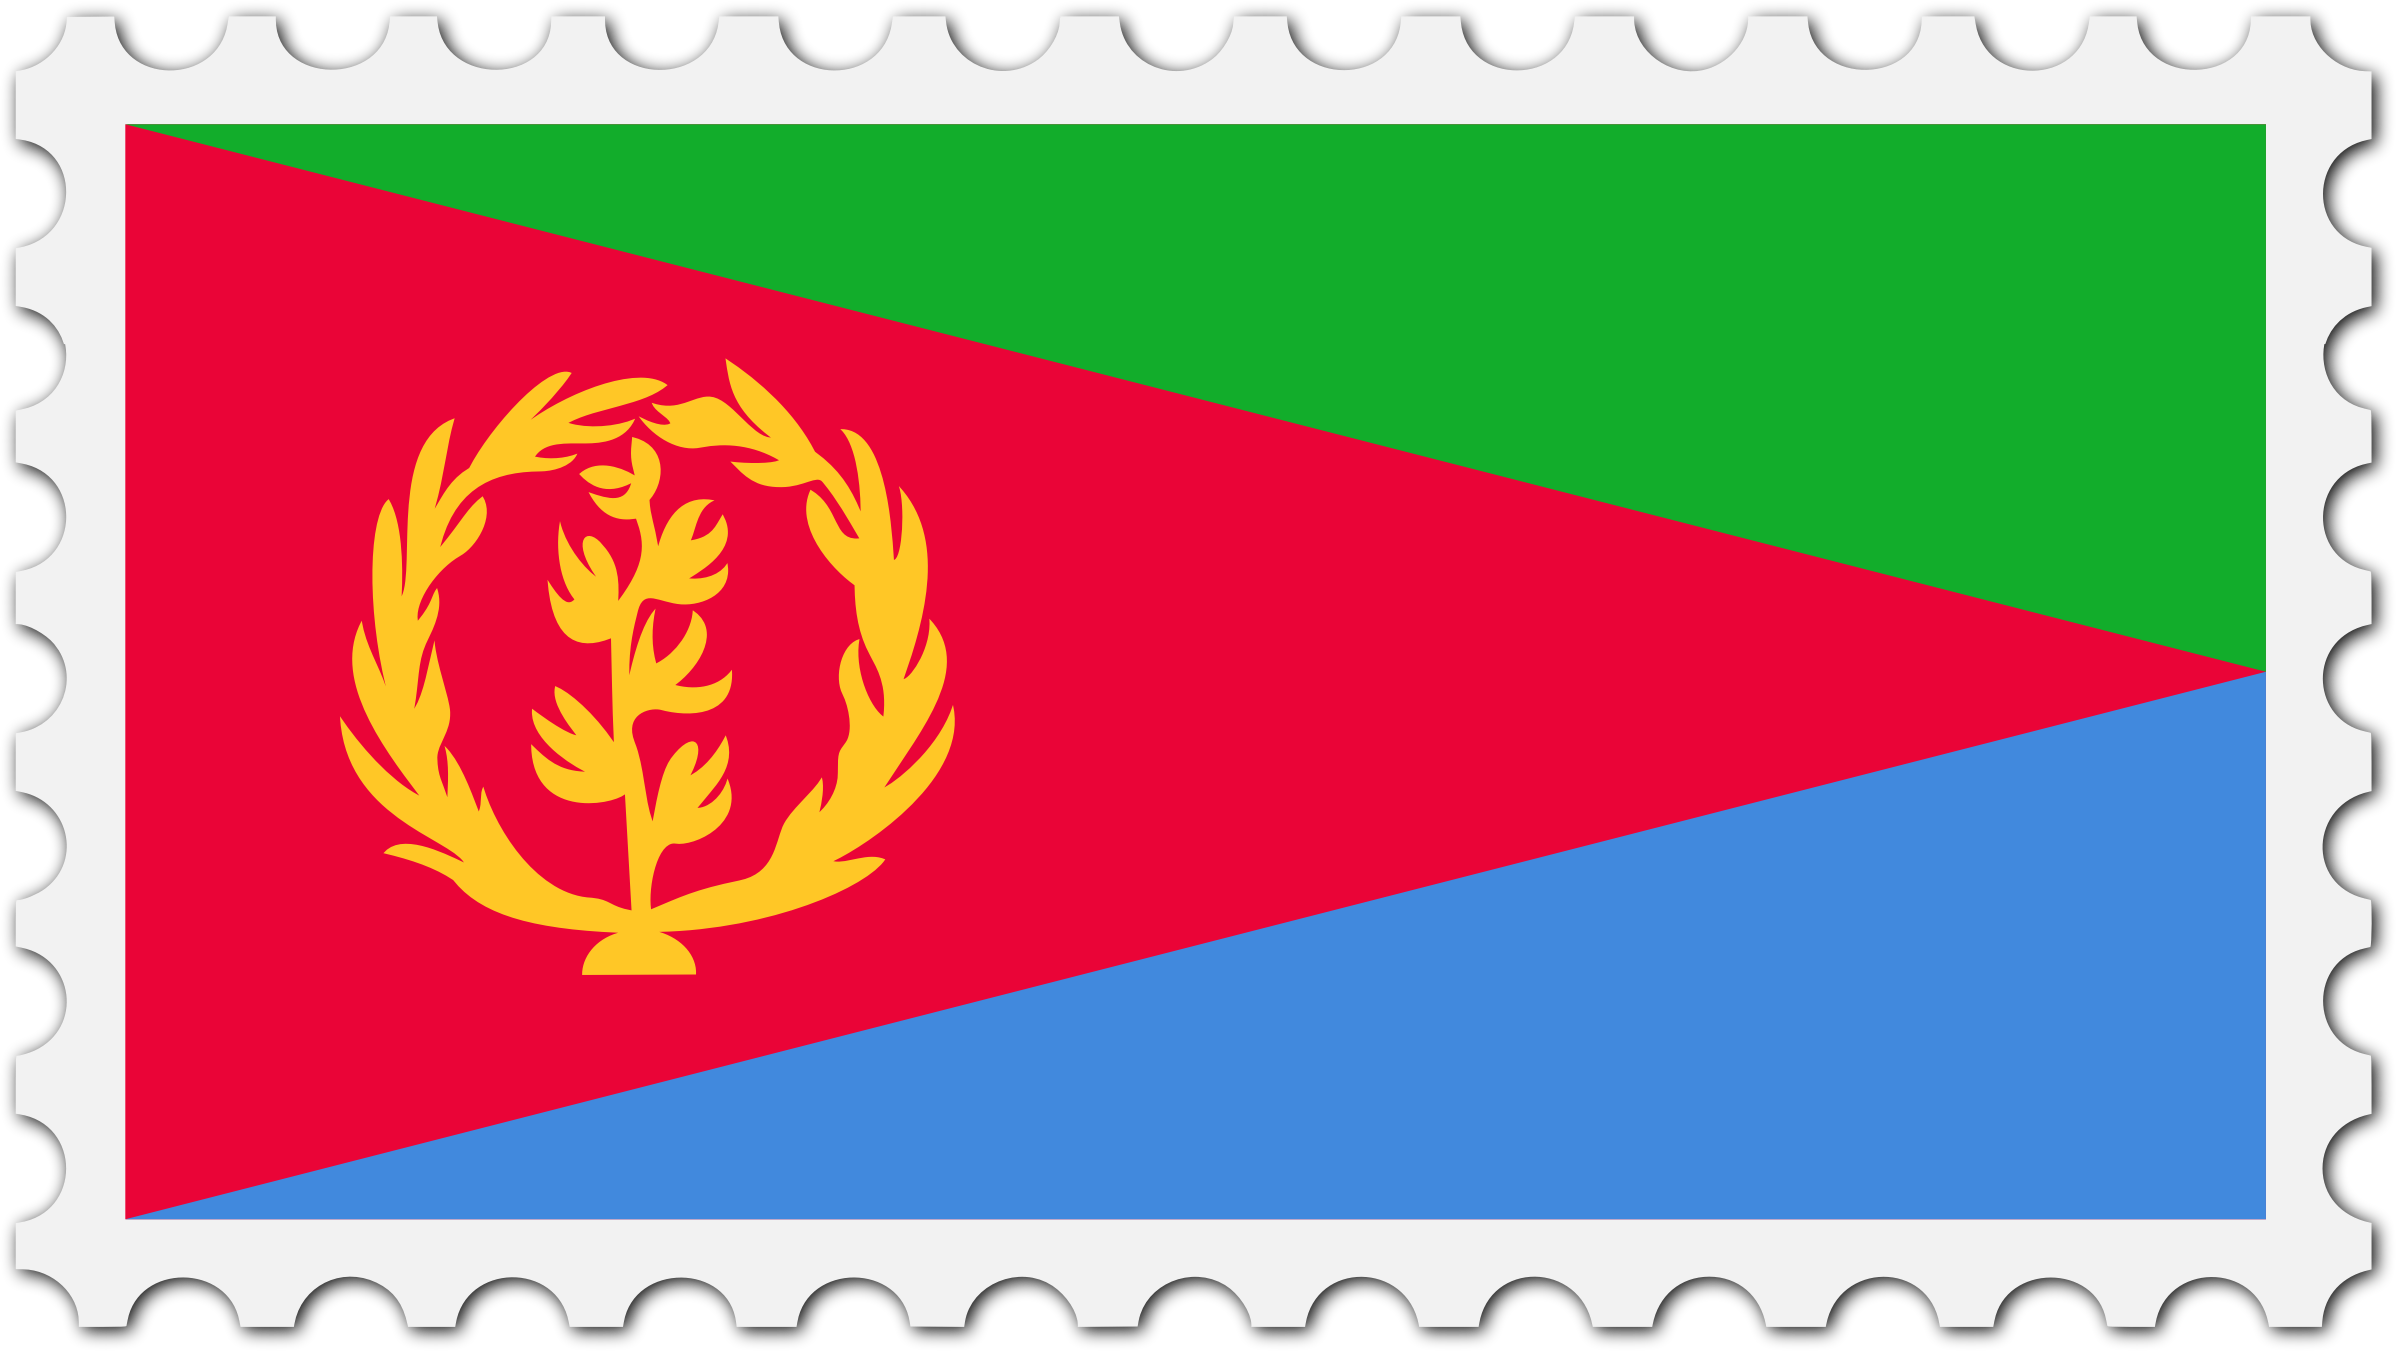 Eritrea flag stamp by Firkin